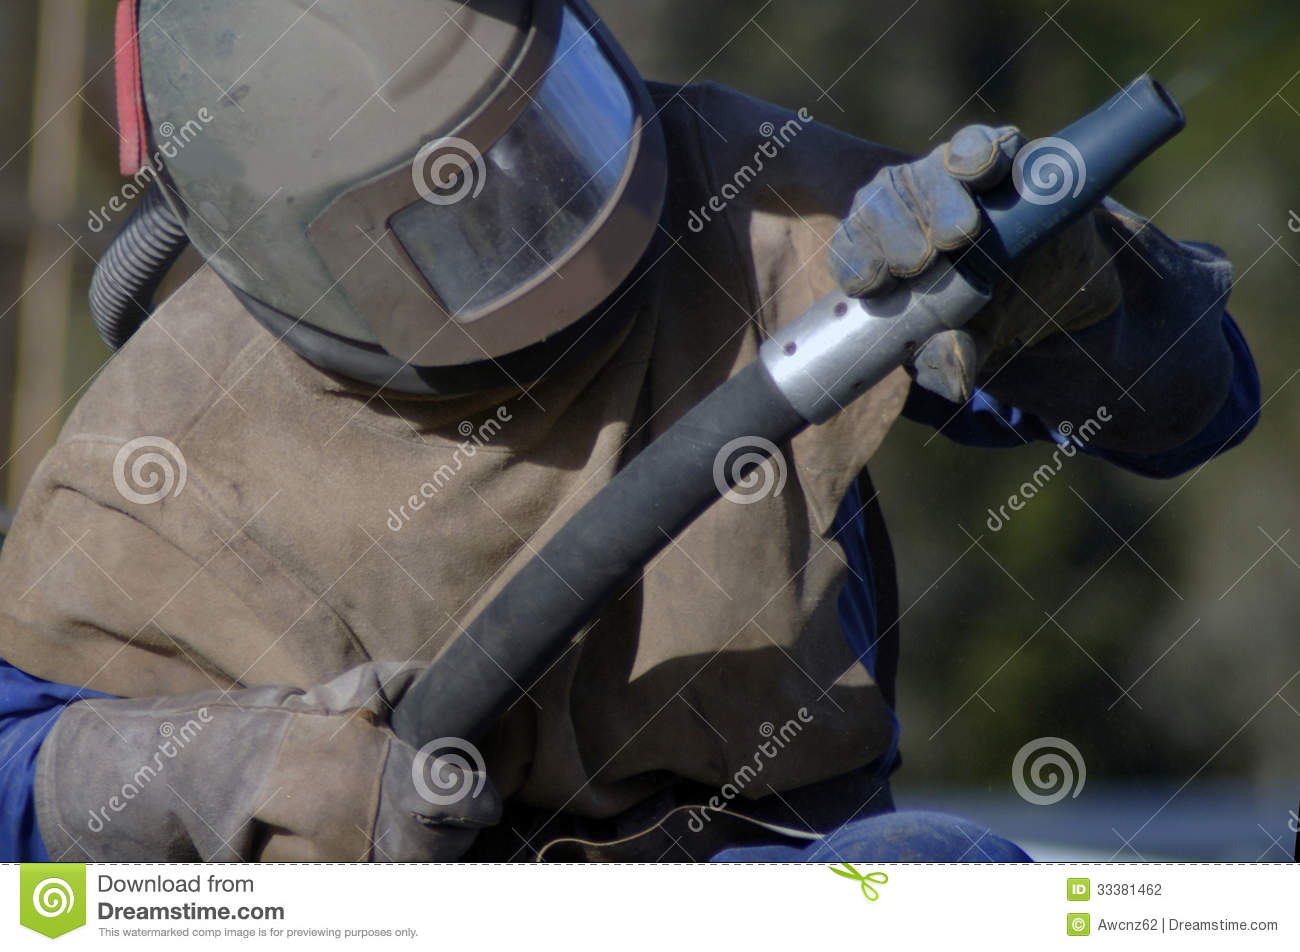 Sandblaster at work stock photo  Image of gear, people - 33381462